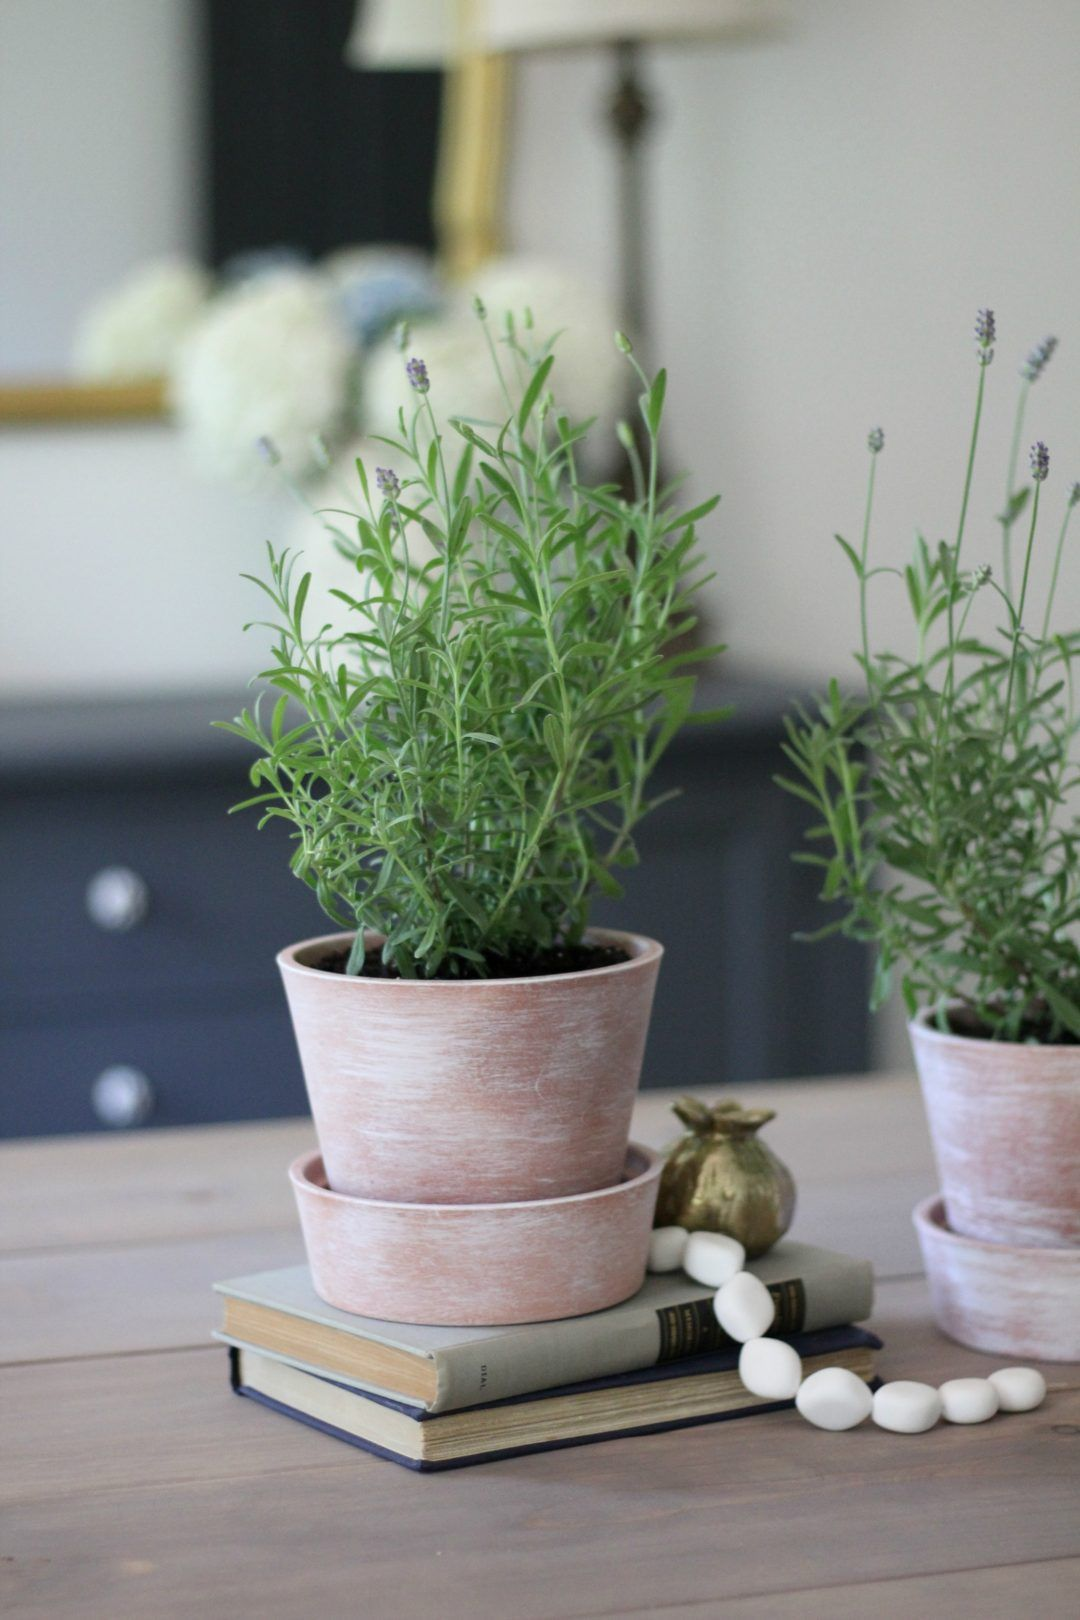 Best Pots For Indoor Herbs White Washing Terra Cotta Pots And Tips For Growing Lavender